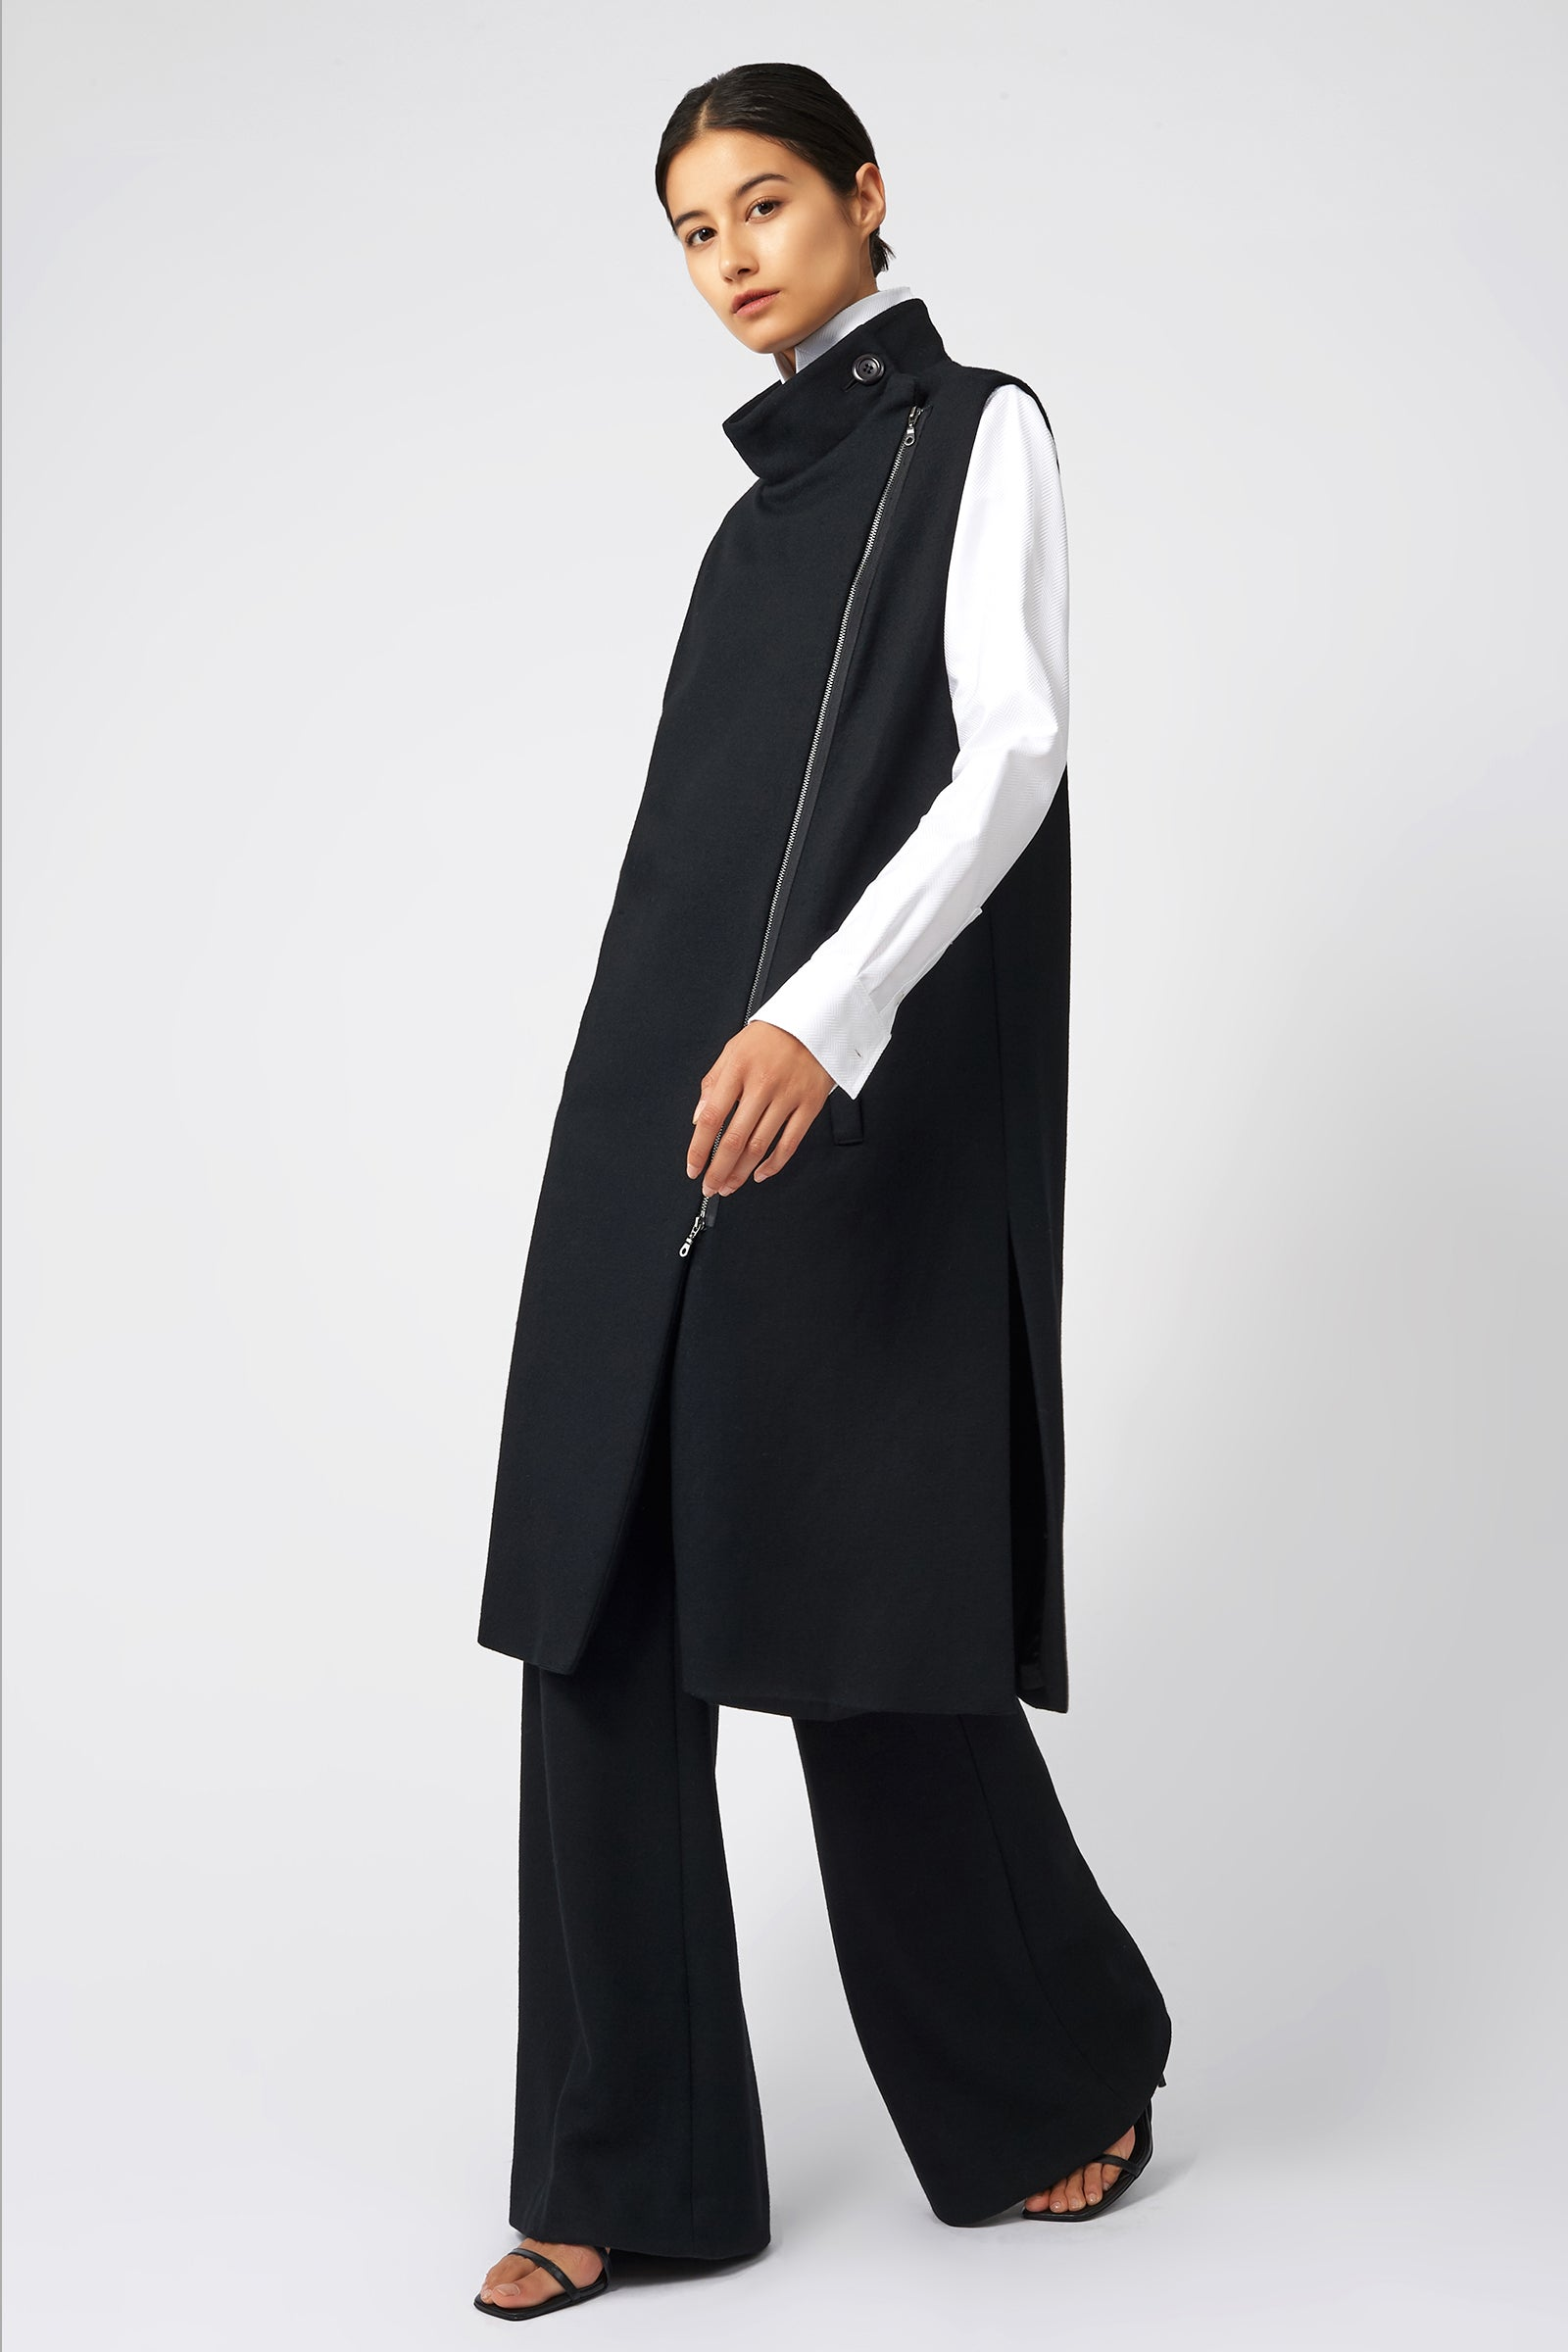 Kal Rieman Side Zip Vest in Black on Model Left Side View